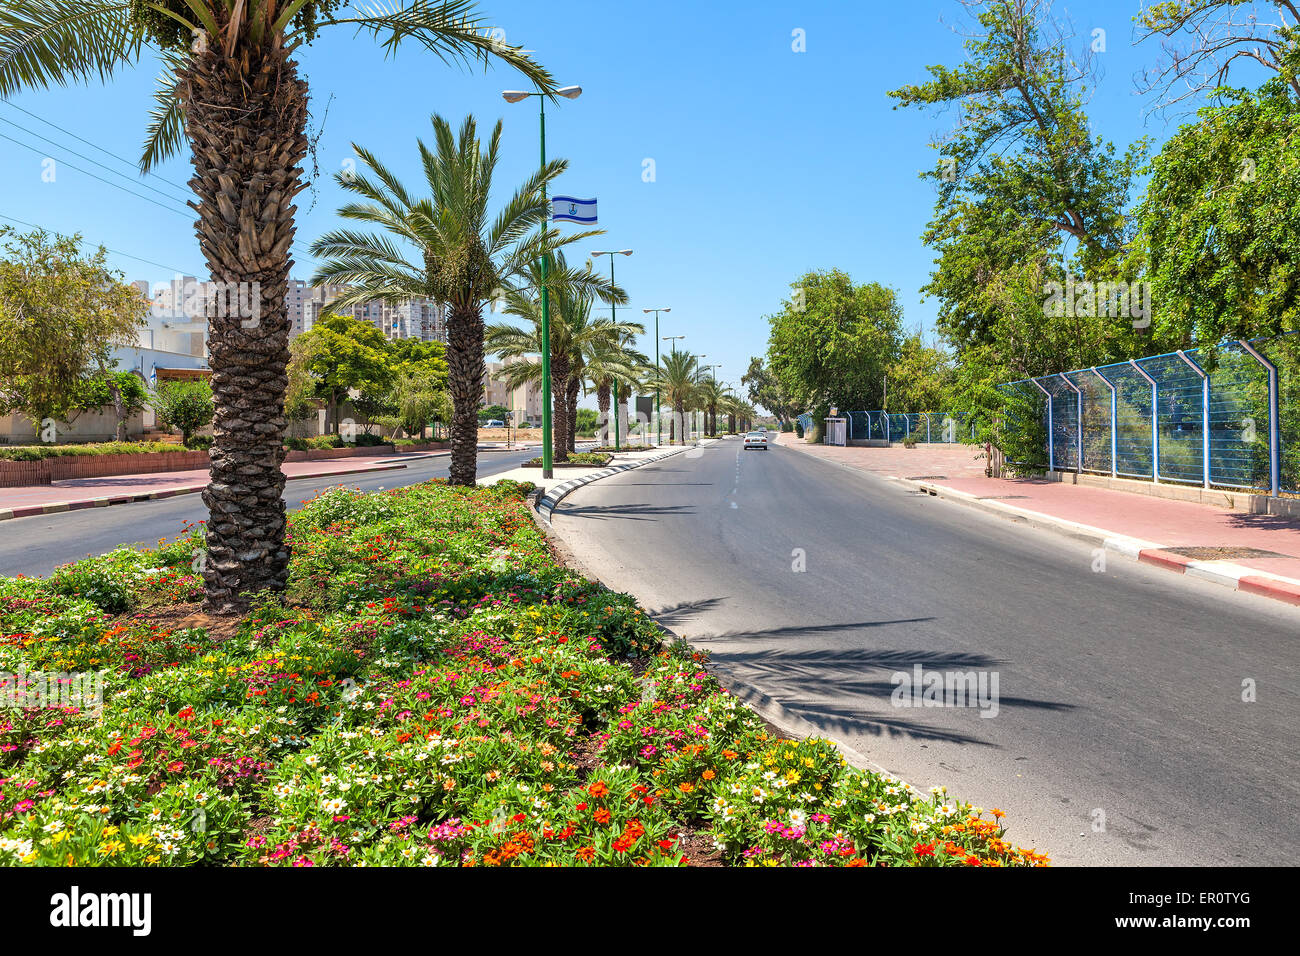 Green flowerbed and palms along urban road in Ashqelon, Israel. - Stock Image